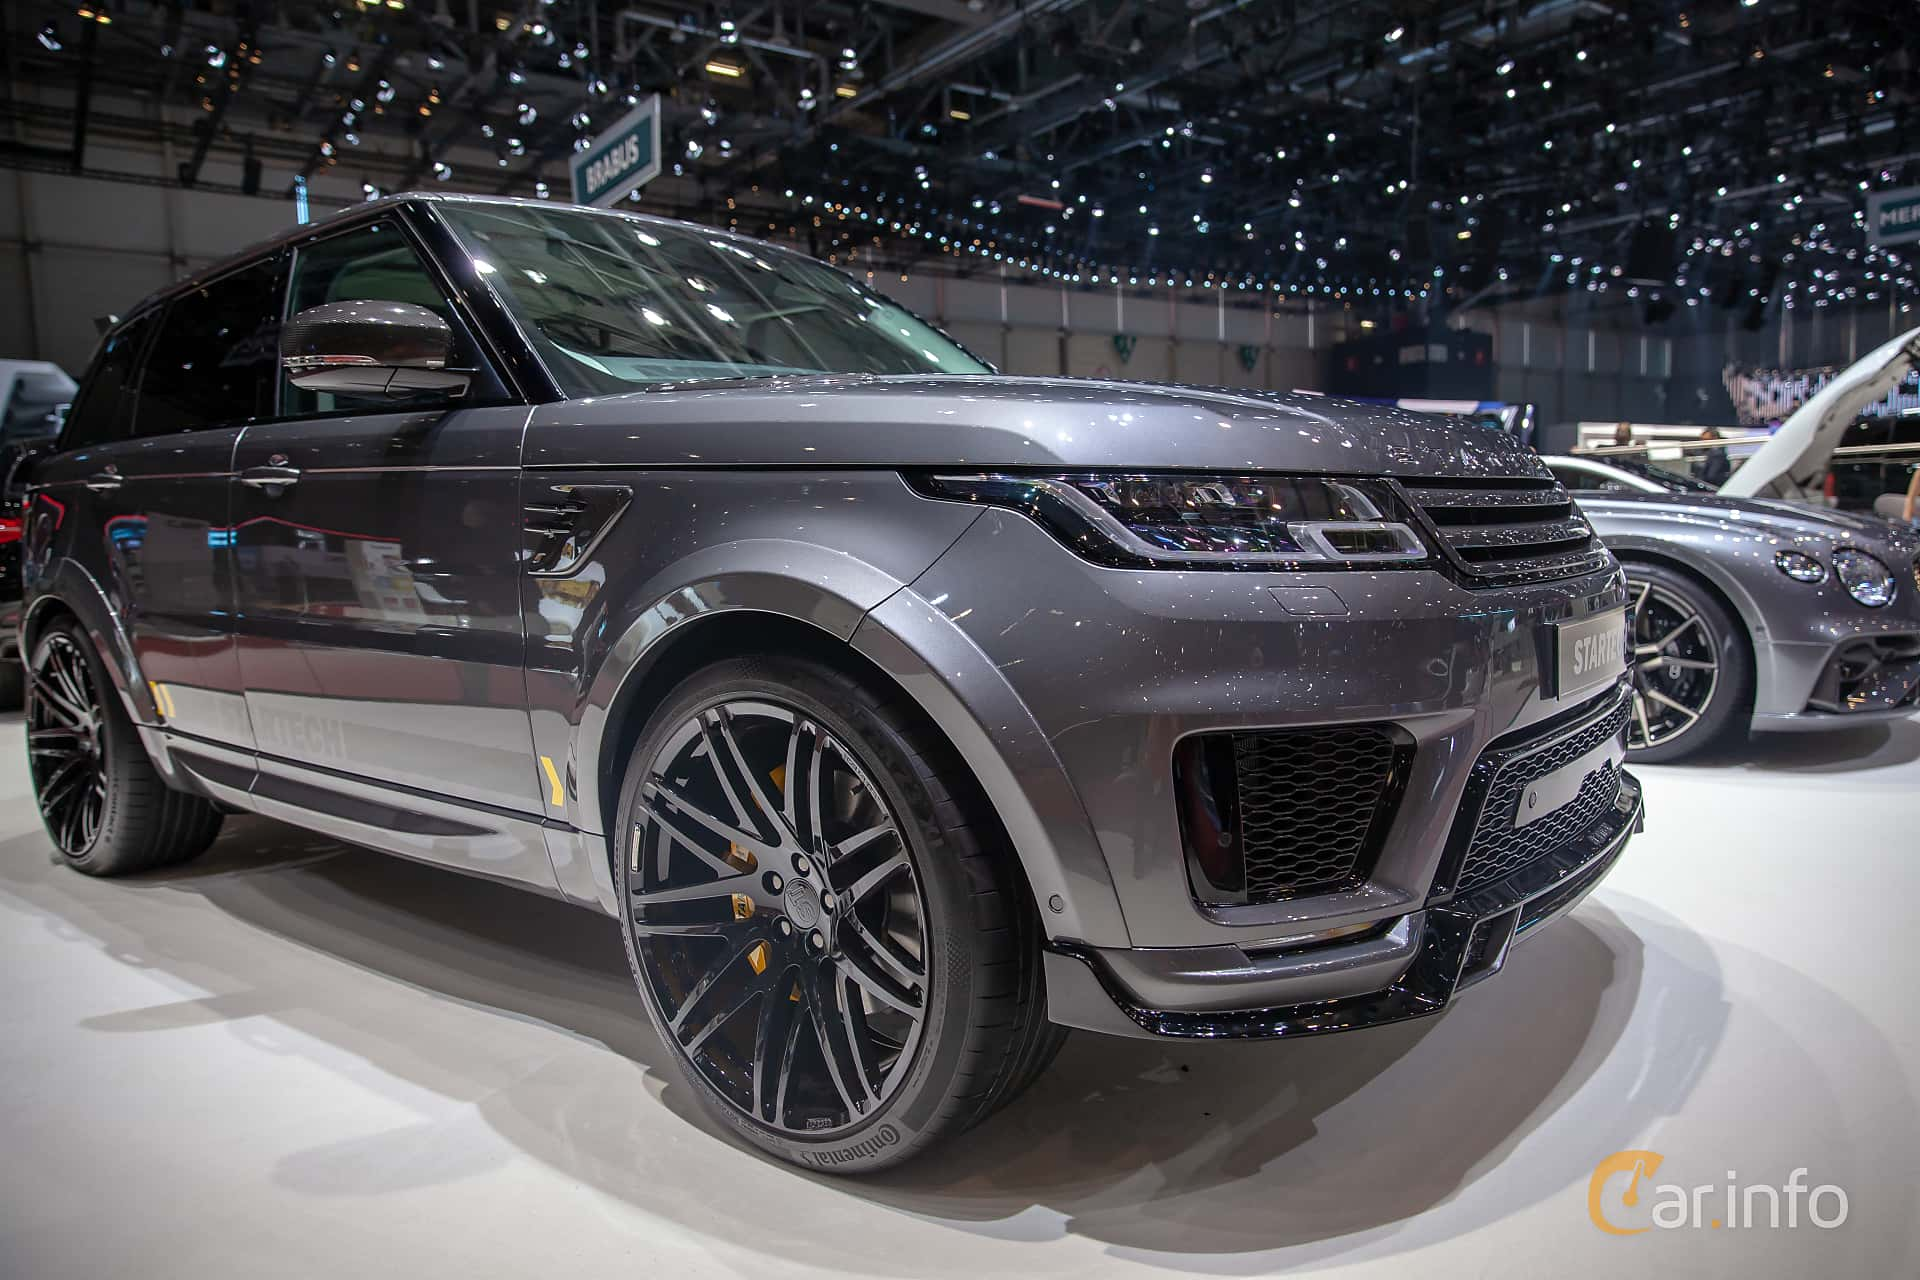 STARTECH Range Rover Sport 5.0 V8 4WD Automatic, 525hp, 2019 at Geneva Motor Show 2019